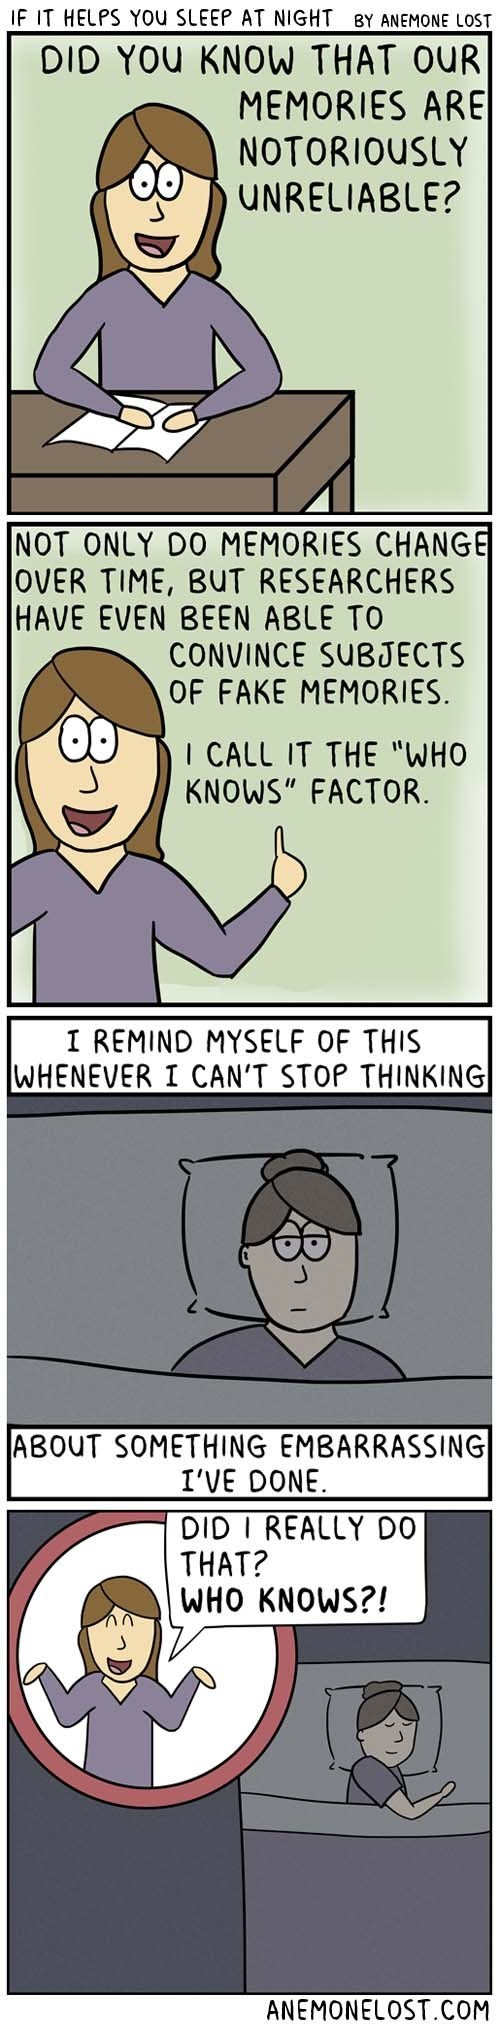 web comics anxiety psychology Even Though You Most Certainly Did Do It